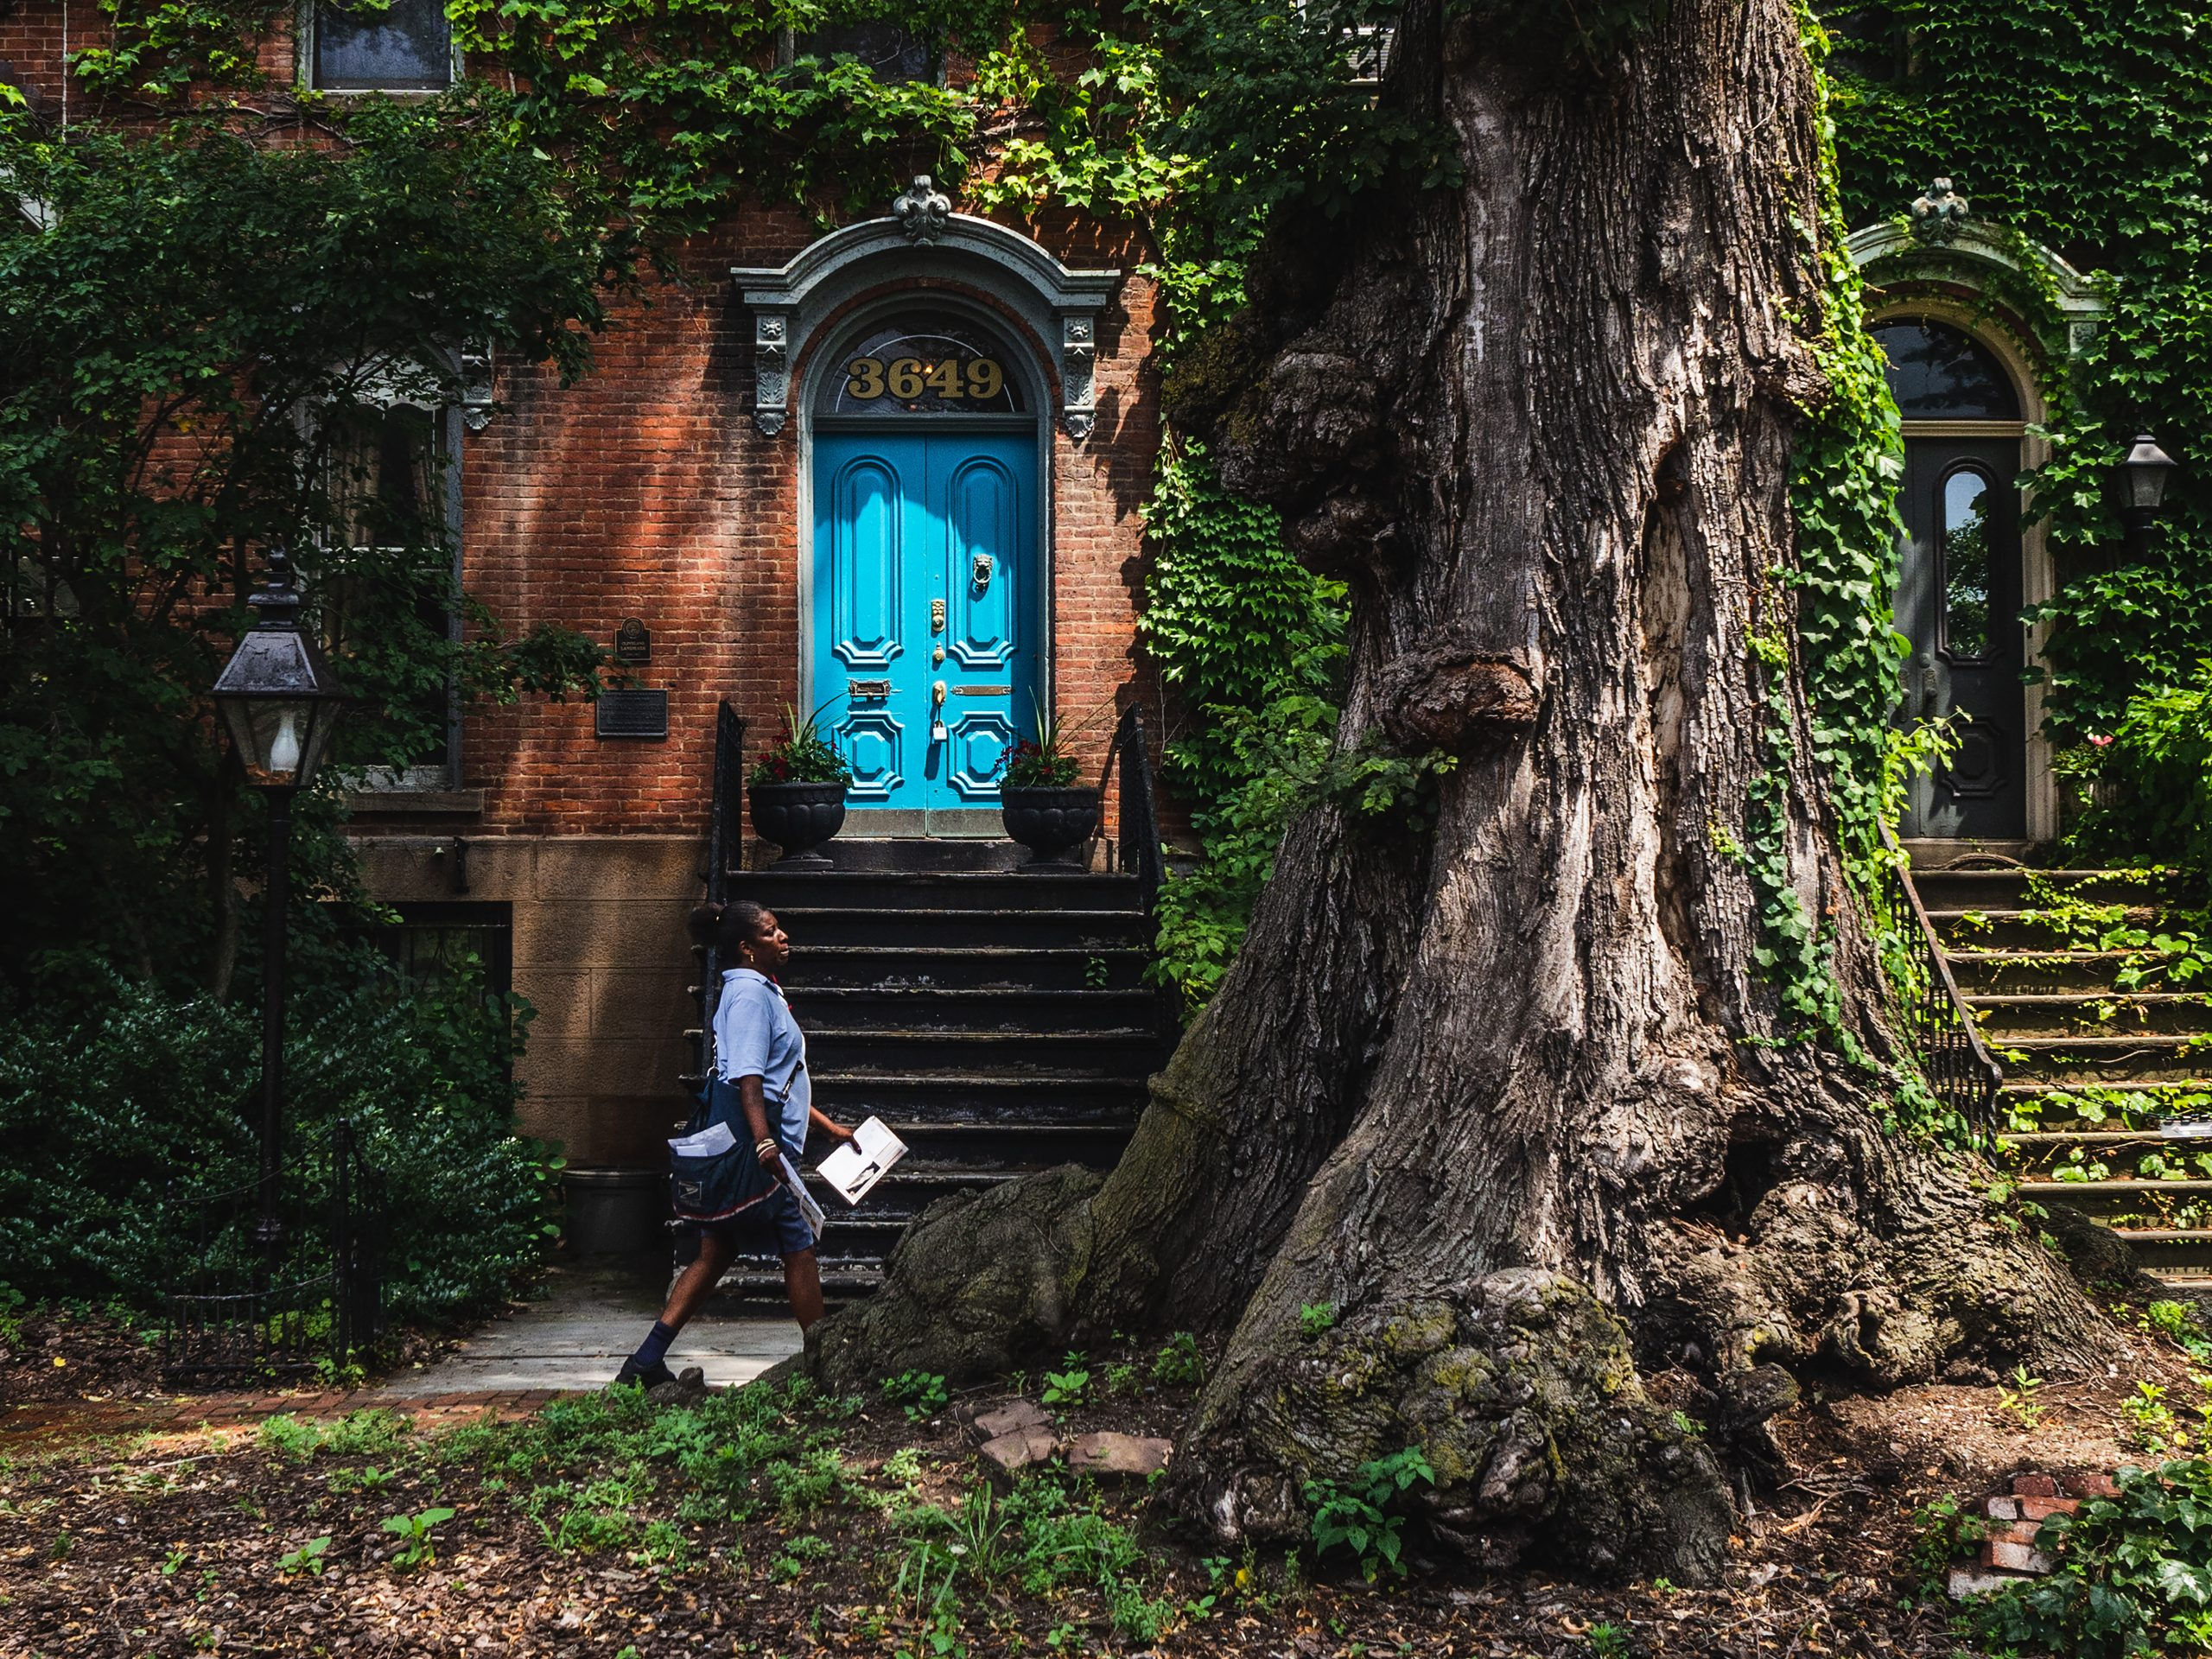 Female mail carrier walking down treelined street, passing a brownstone with a bright blue door